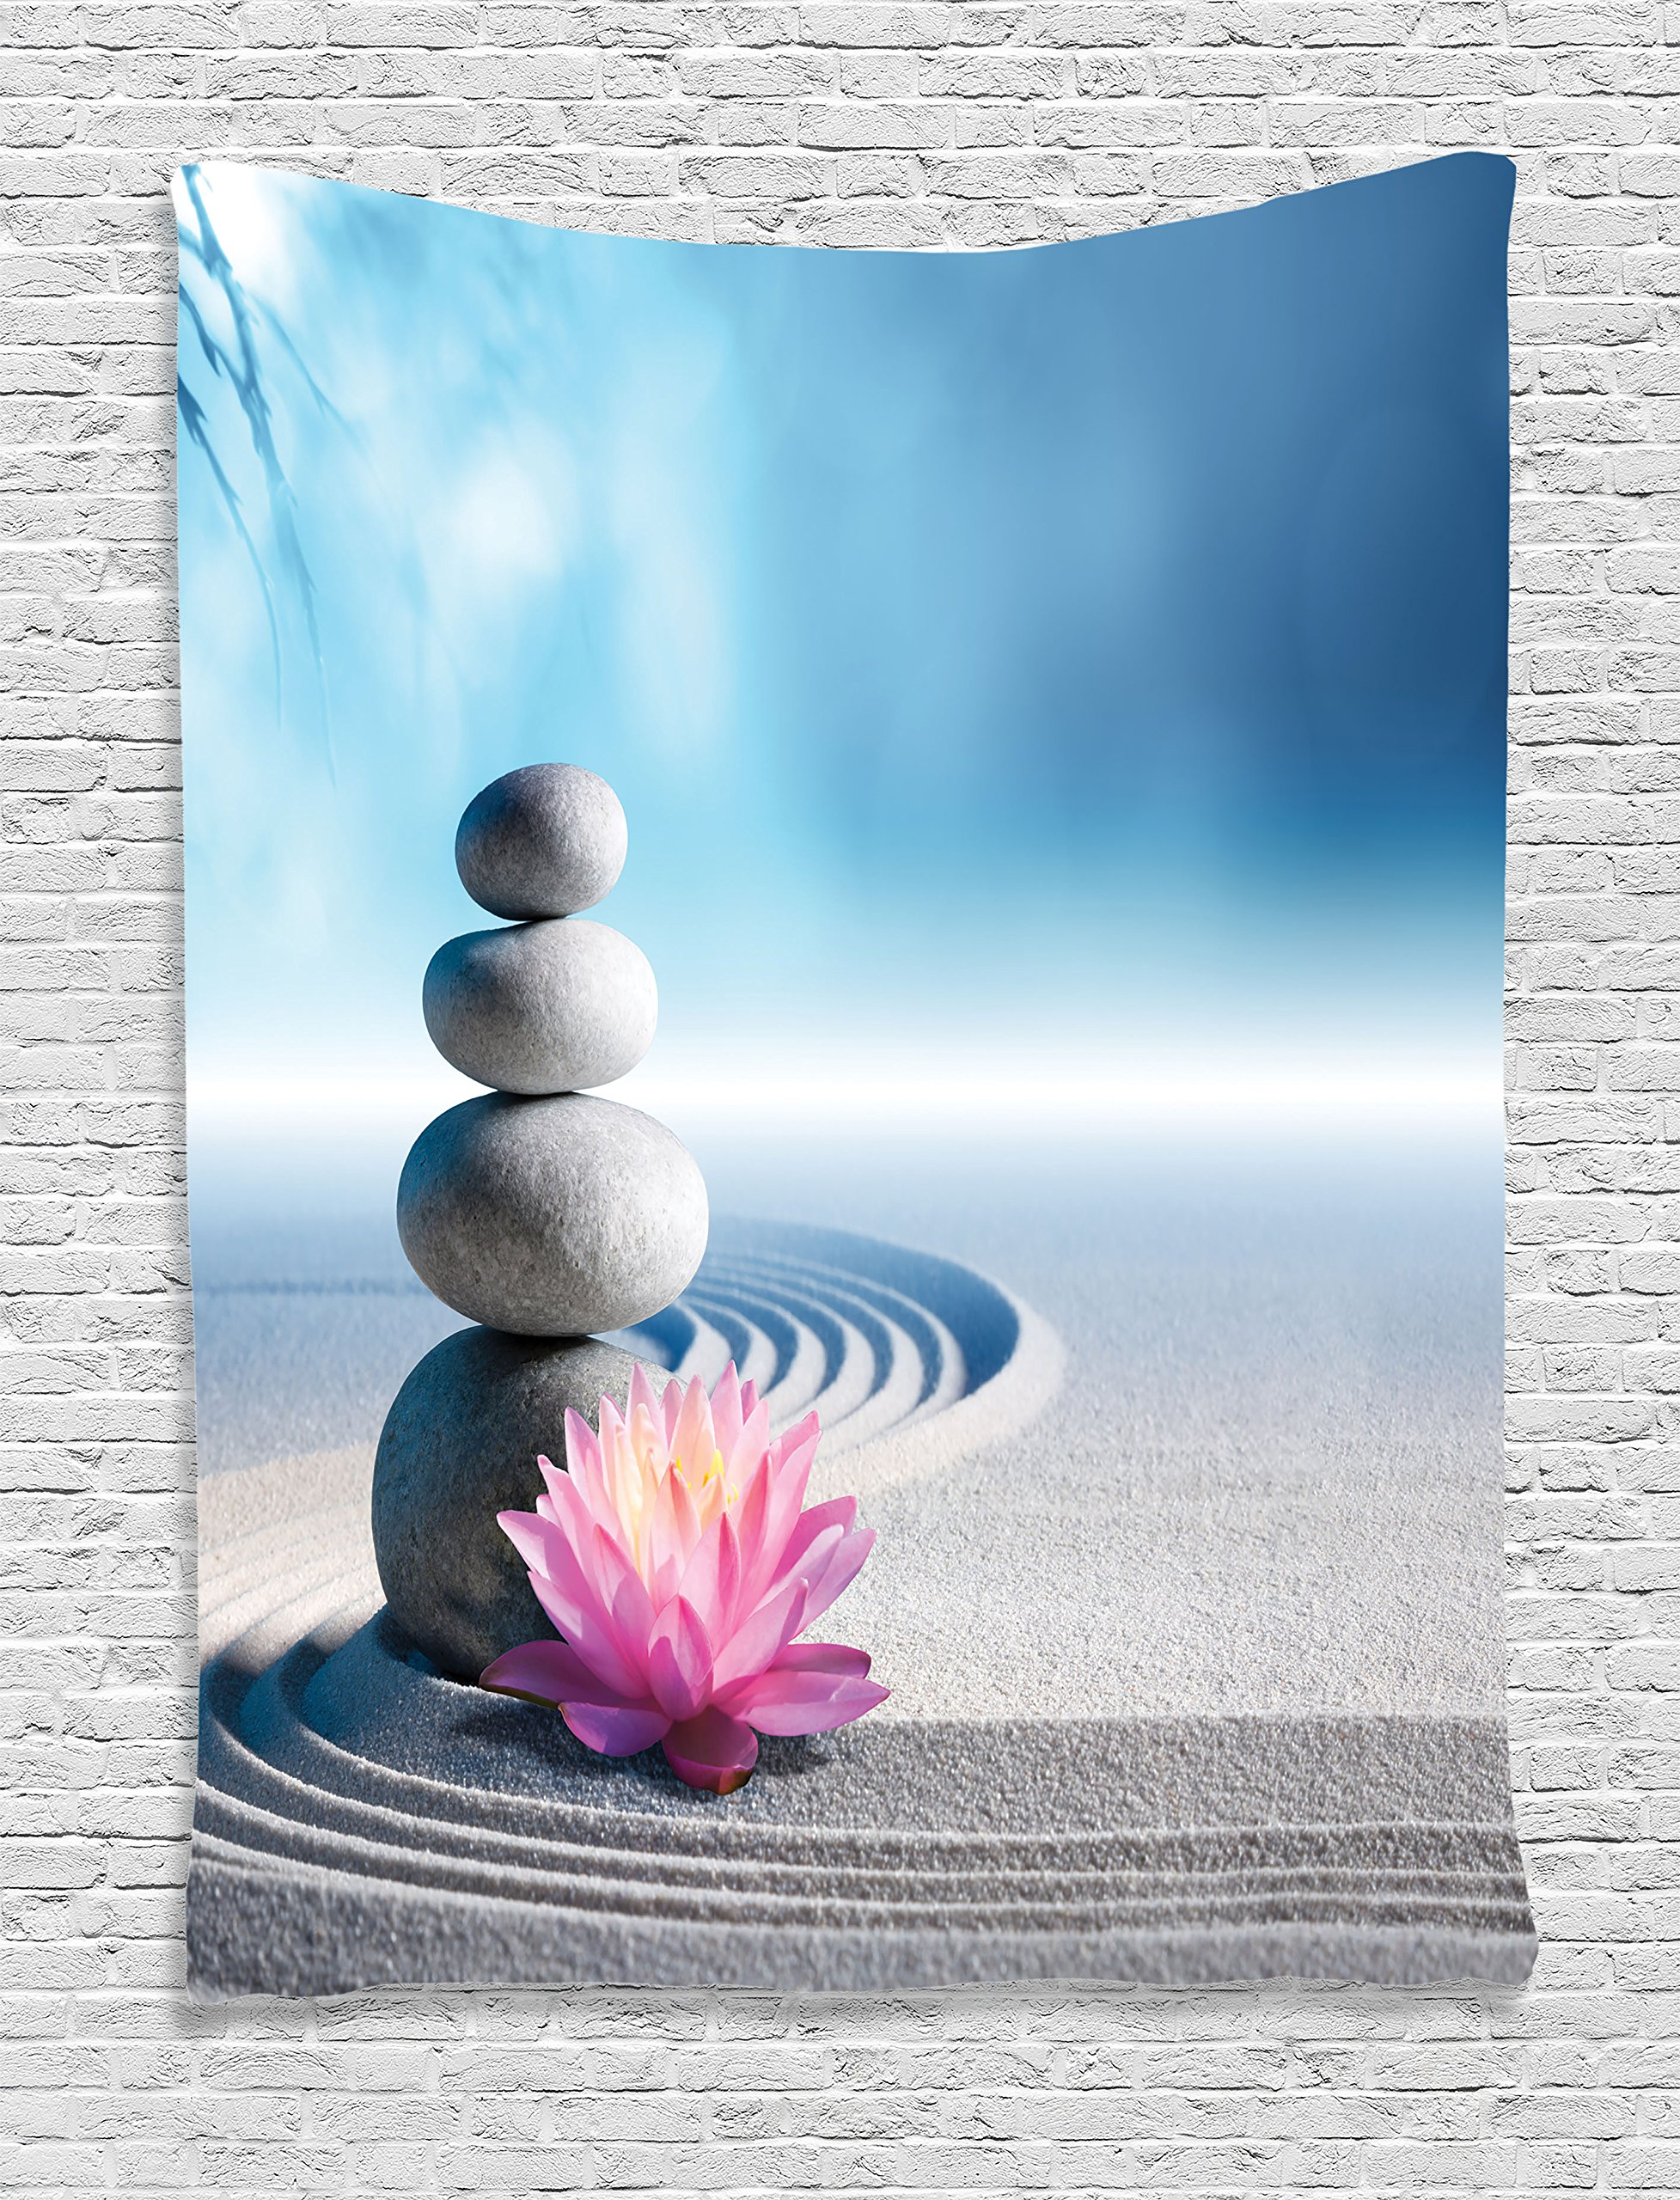 Ambesonne Spa Decor Tapestry, Stones and Lotus Flower Over Sand Meditation Harmony Balance Flourish Your Spirit Theme, Bedroom Living Room Dorm Decor, 40 W x 60 L inches, Grey Blue Pink